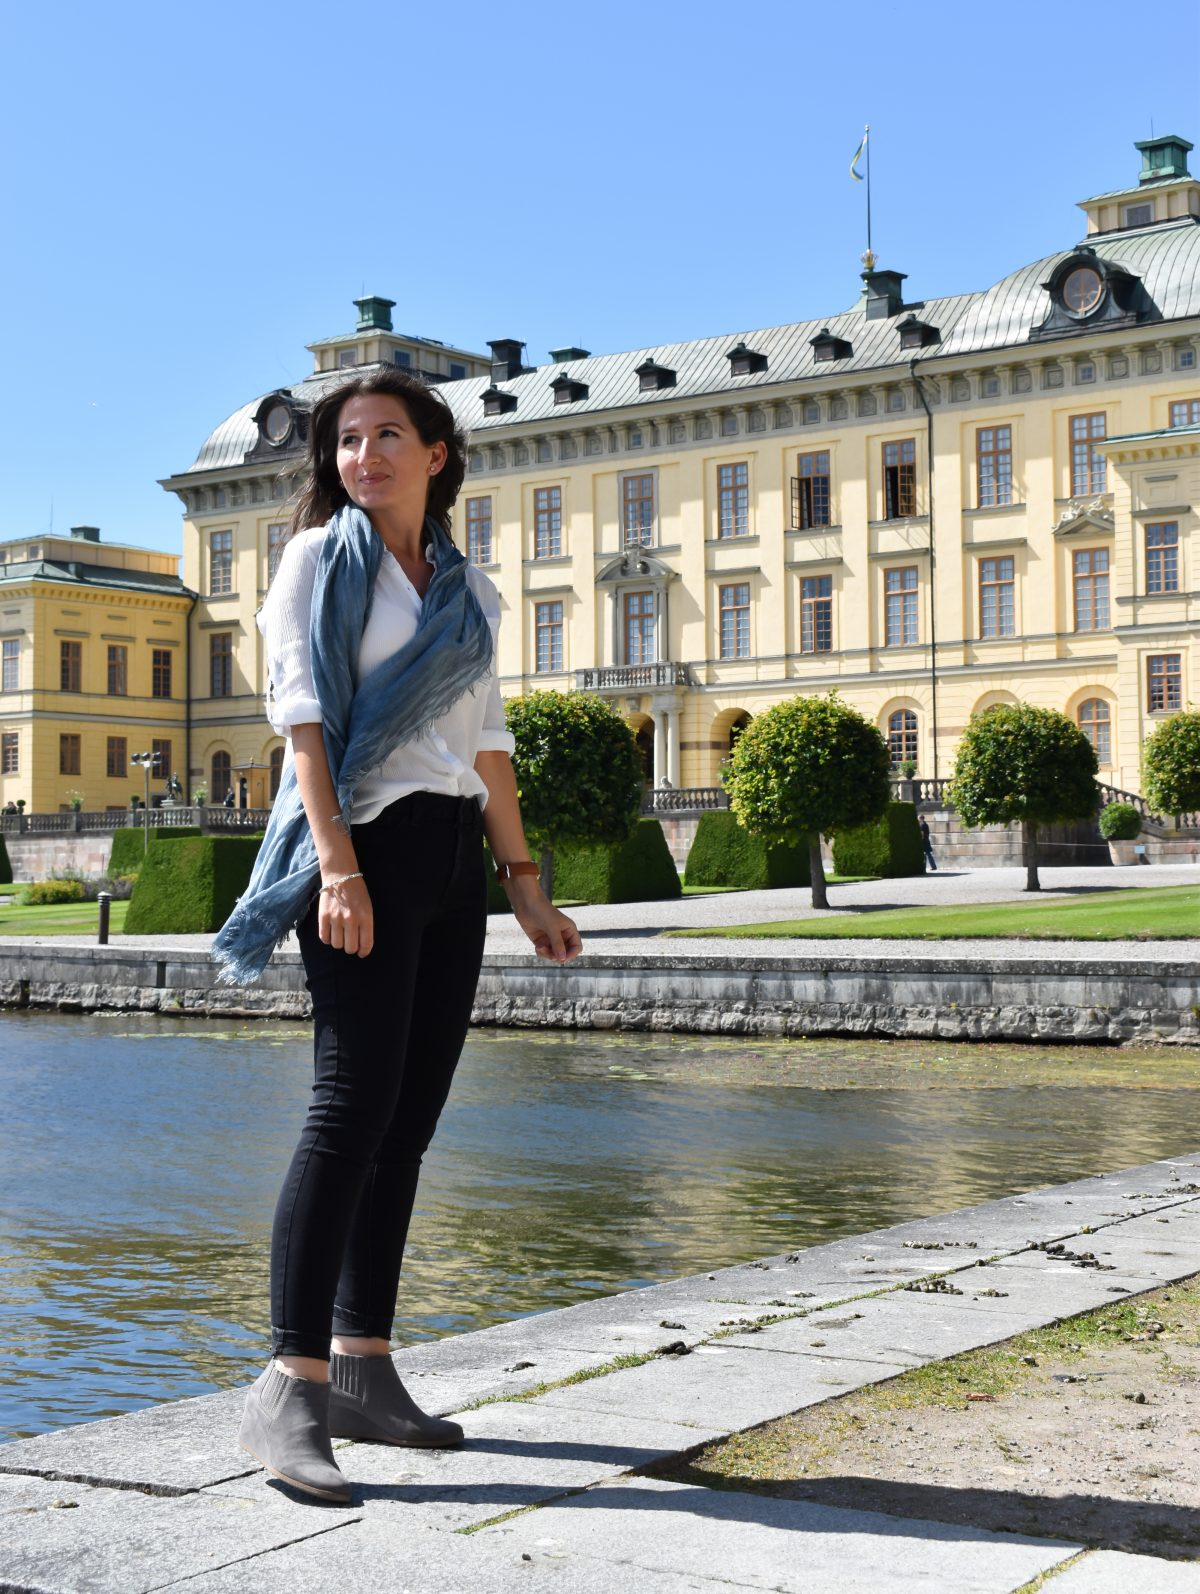 Erin stands in front of Drottningholm Palace along the water's edge